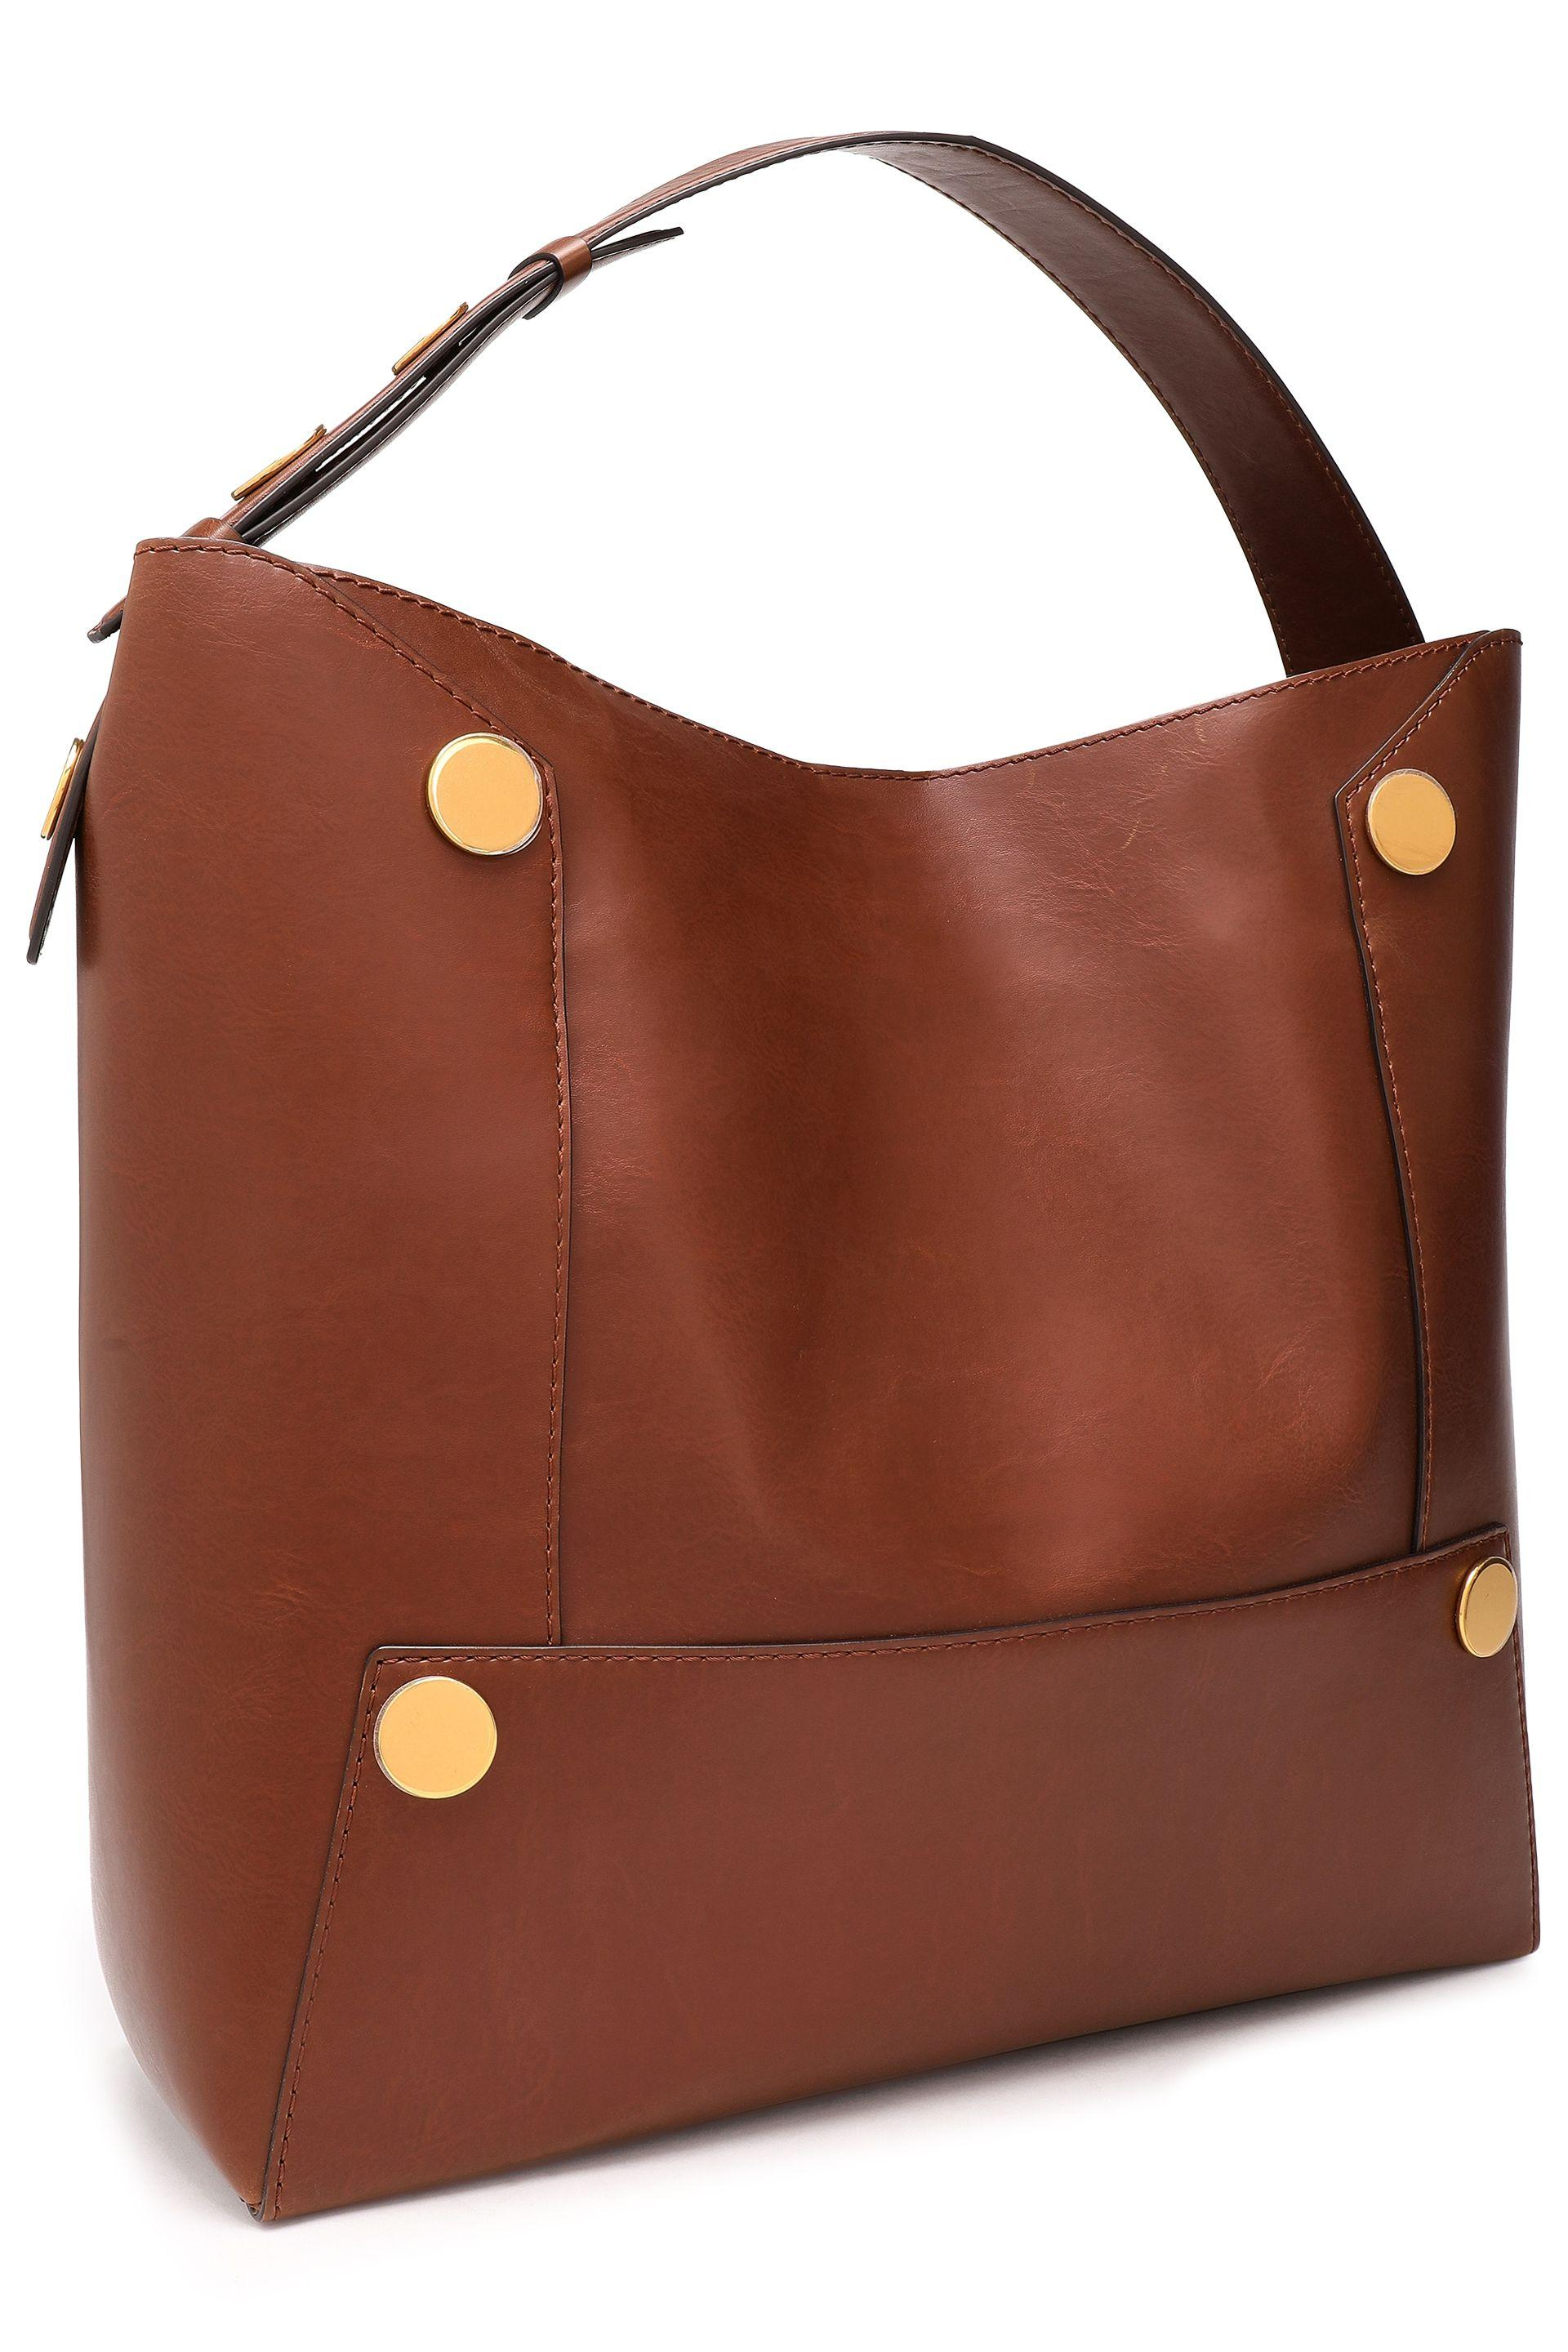 096c4150912e Stella McCartney - Woman Embellished Faux Leather Tote Brown - Lyst. View  fullscreen